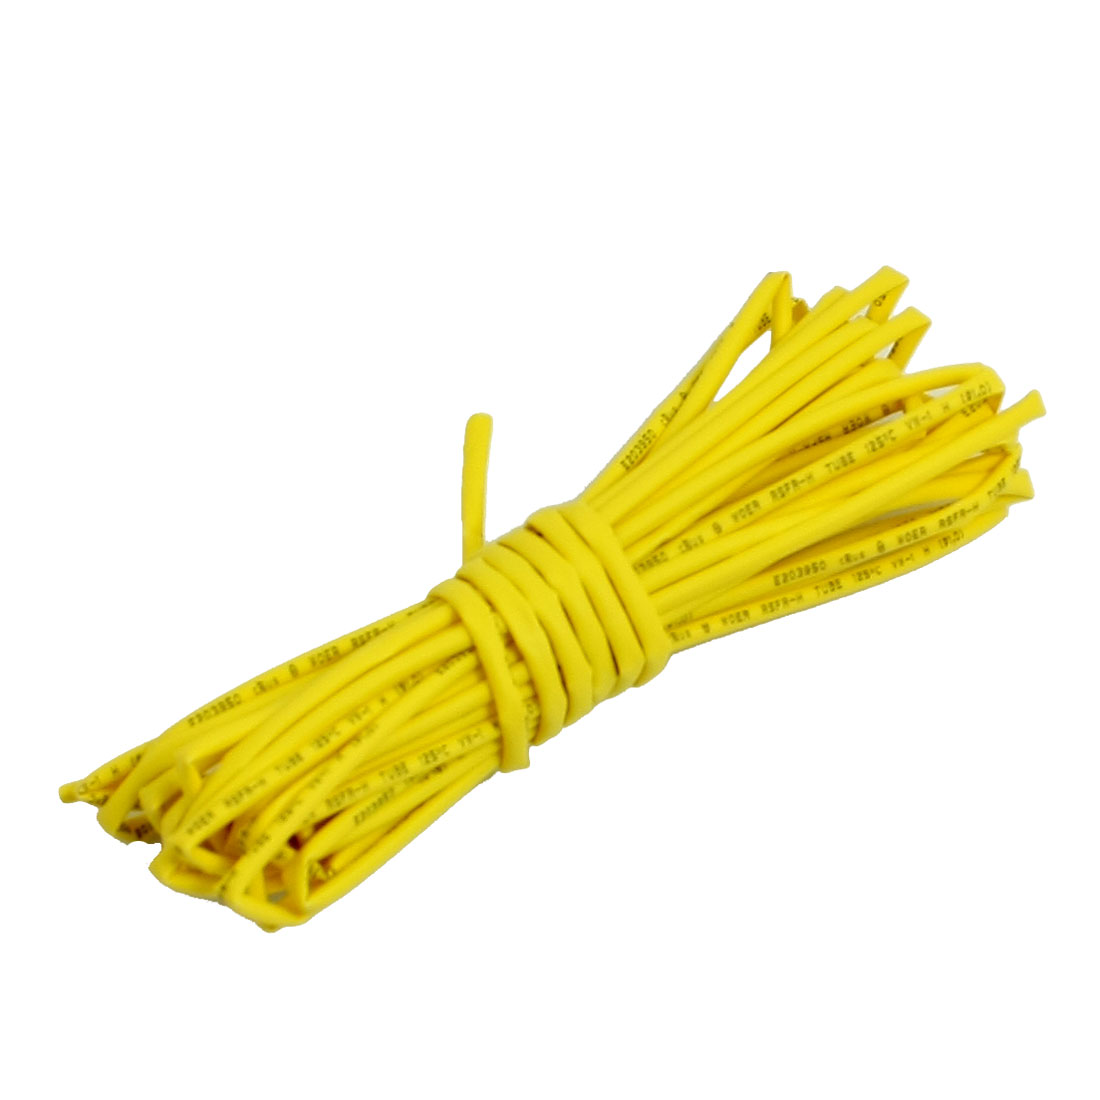 1.0mm Dia. Ratio 2:1 Heat Shrinking Shrinkable Tube Yellow 4M 13Ft